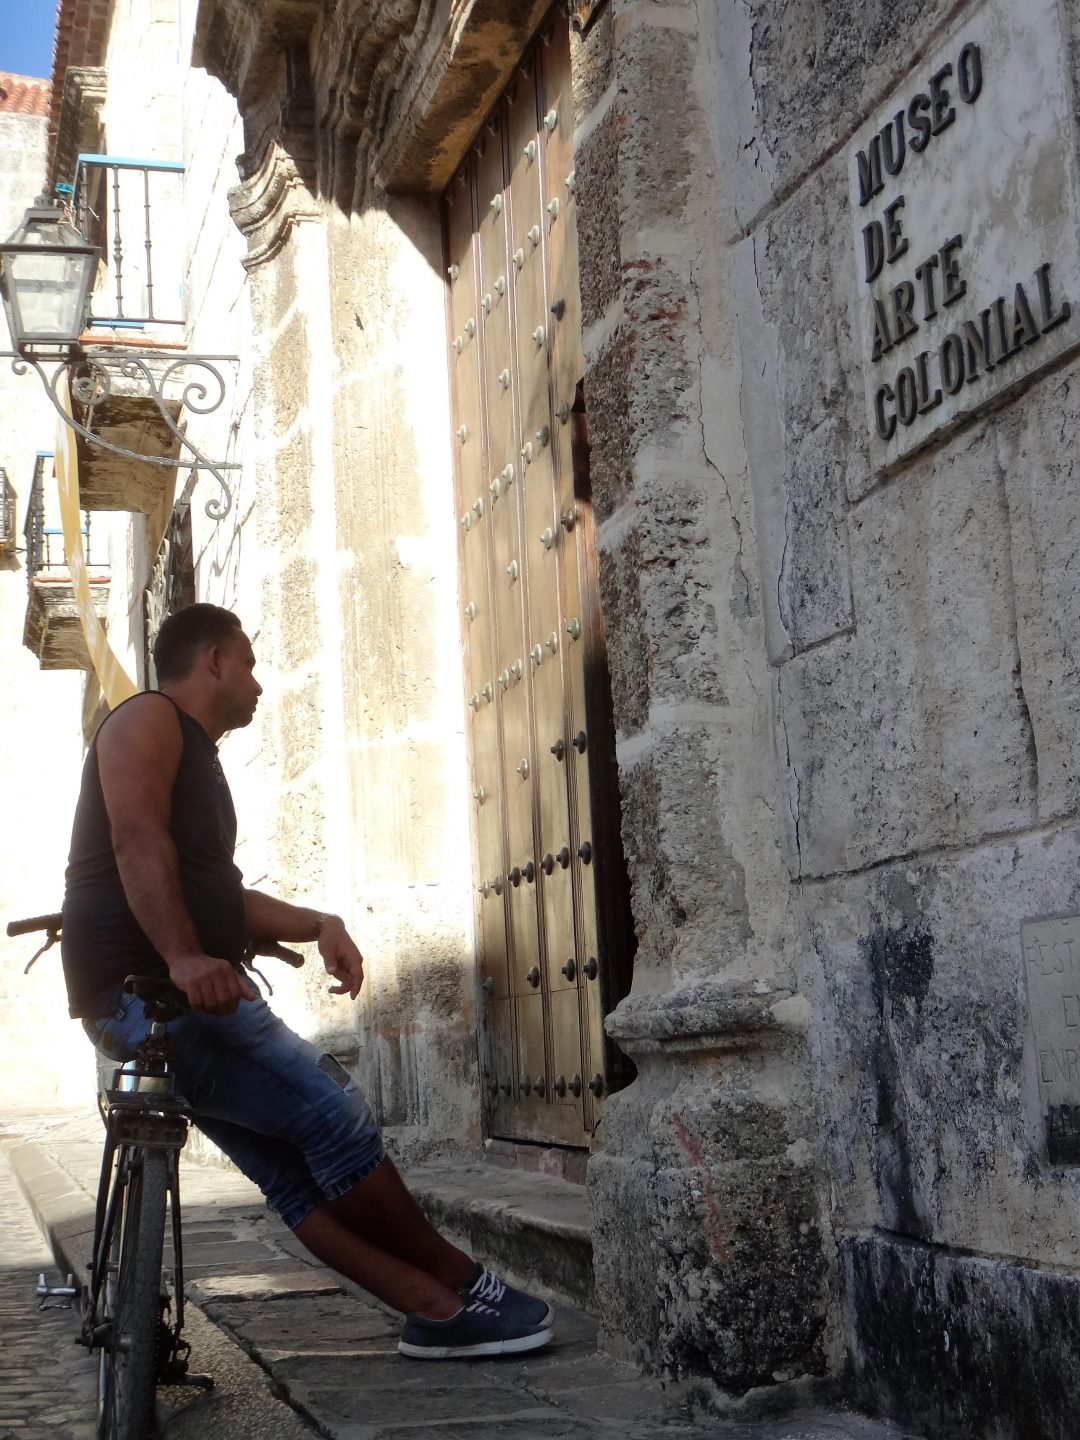 Laidback guy at Museo de Arte Colonial in Havana